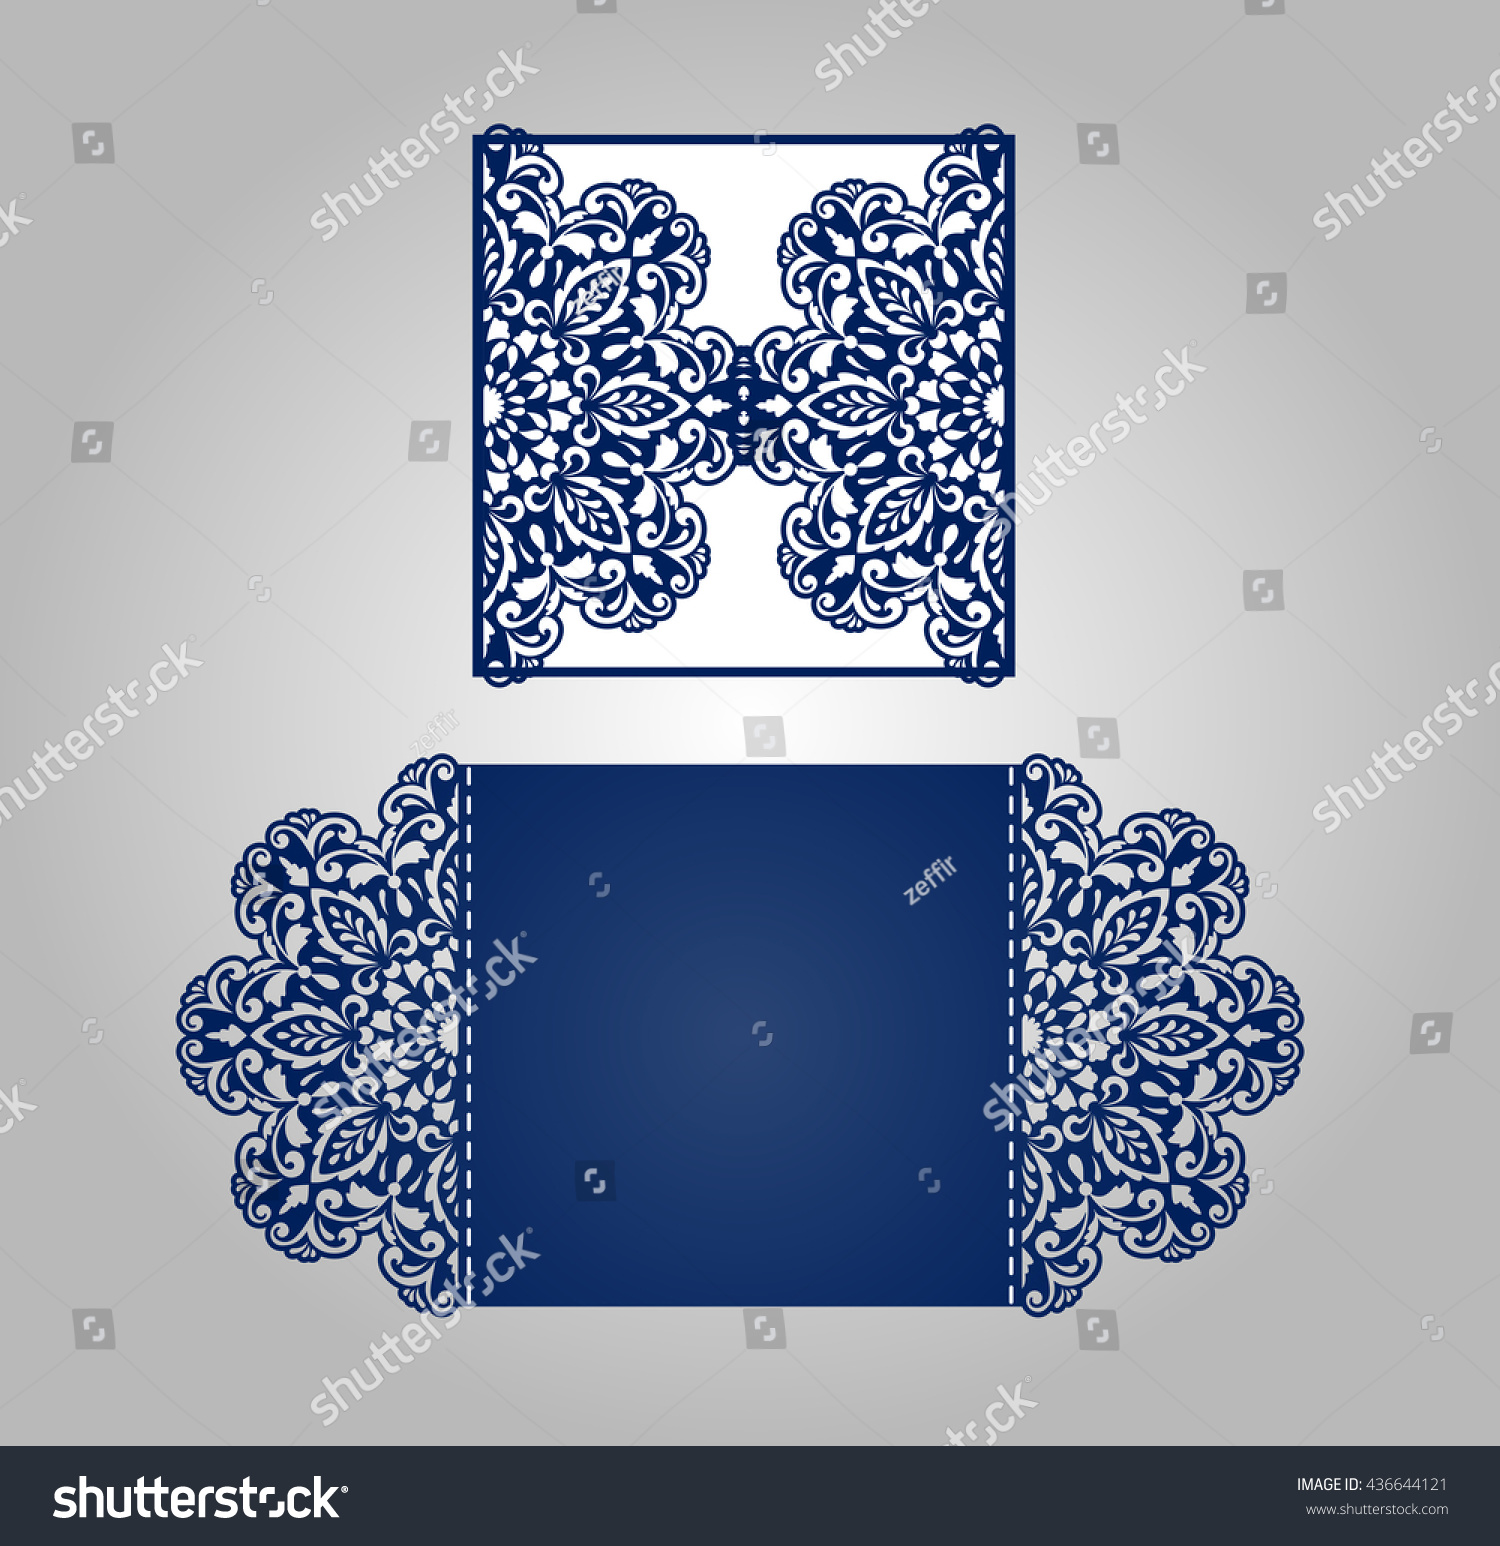 Cutout paper wedding invitation card ornamental stock vector cutout paper wedding invitation card with ornamental panels stopboris Images